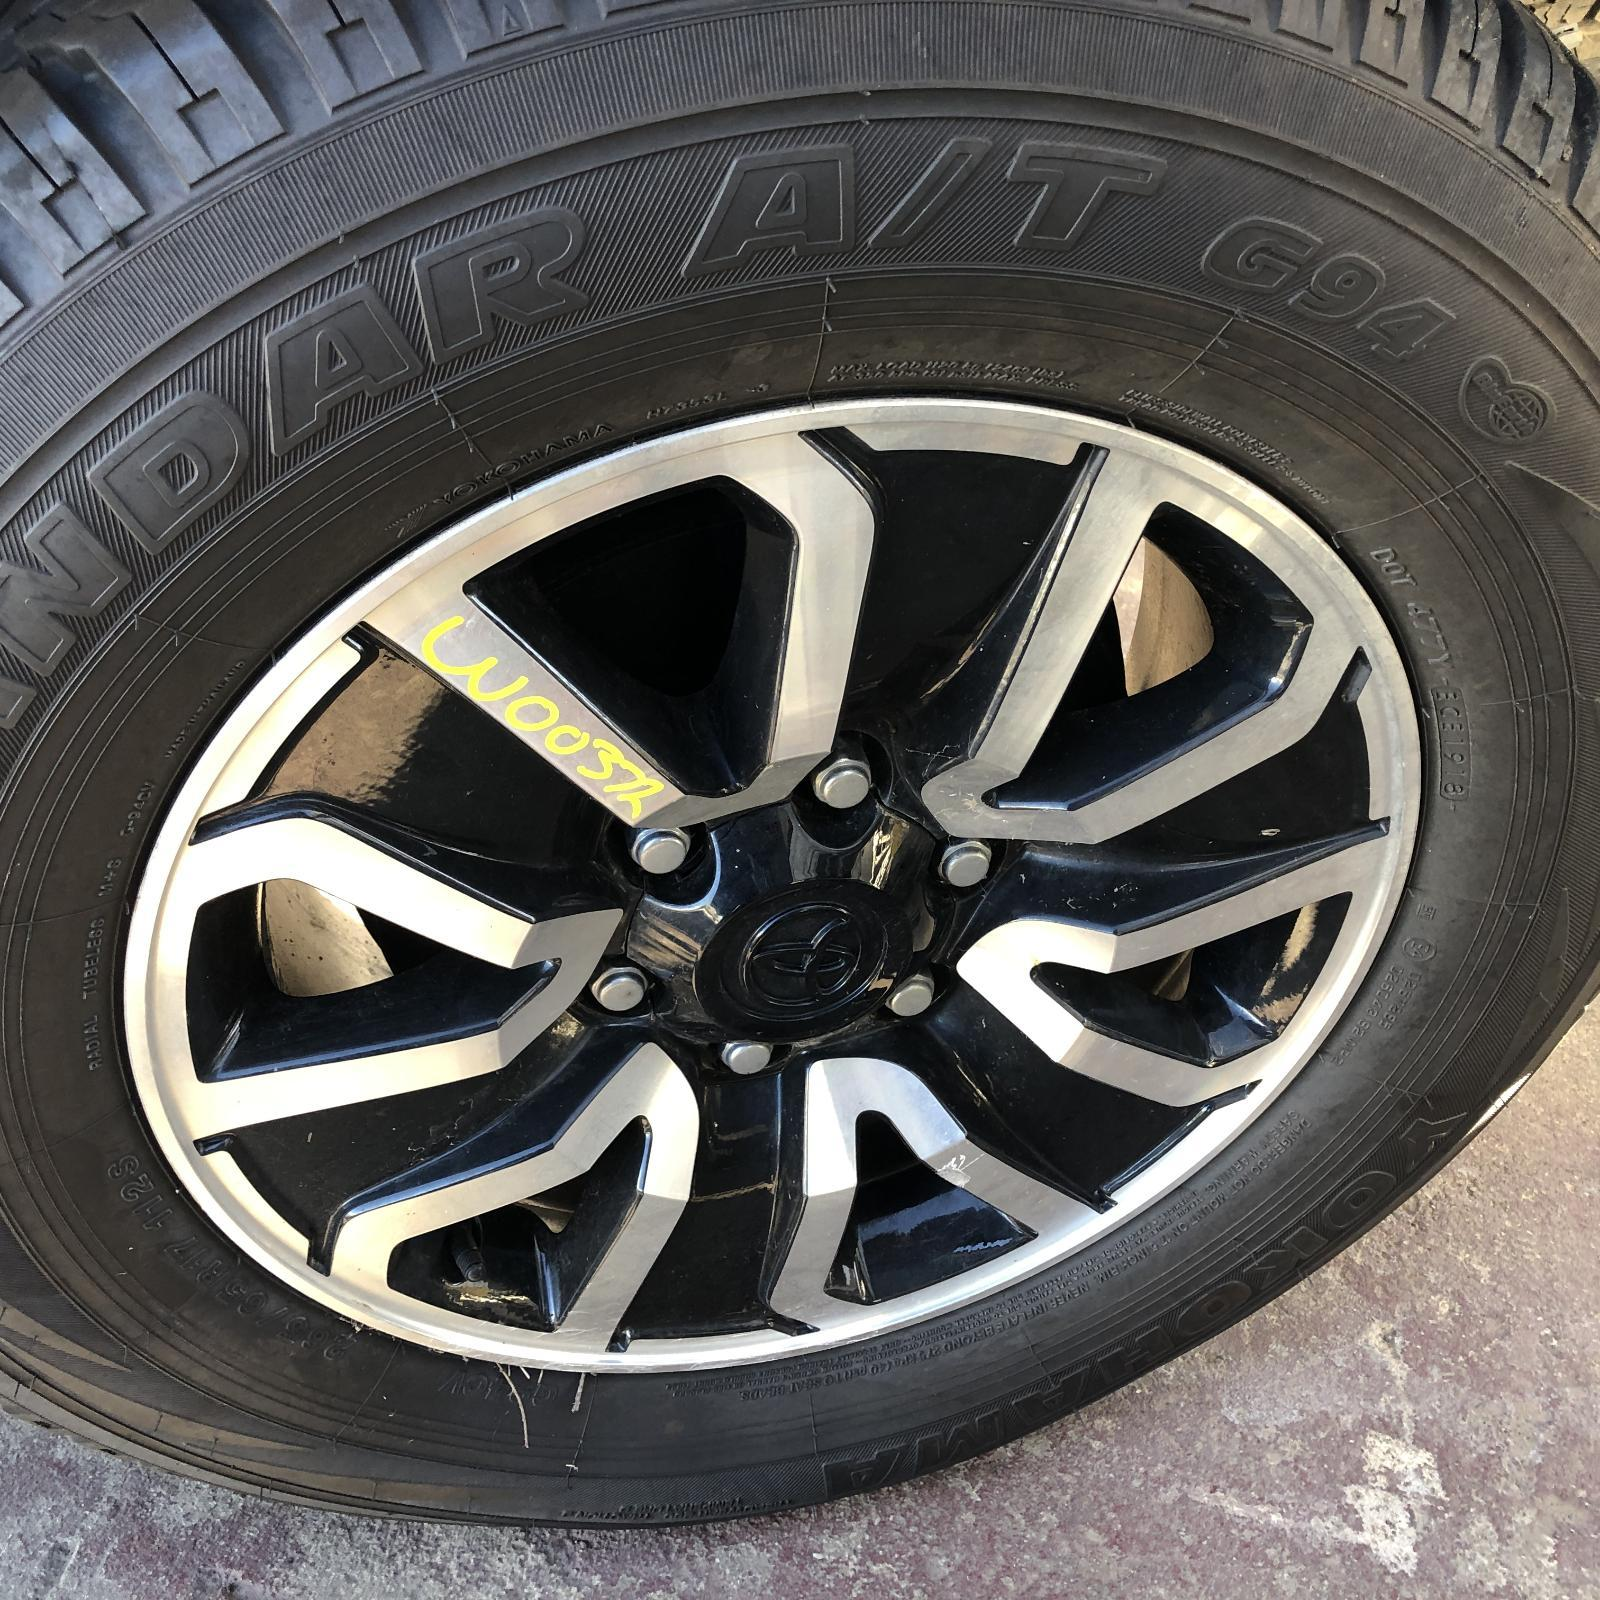 TOYOTA HILUX, Wheel Mag, FACTORY, 17X7.5IN, TOUGH, 04/18-